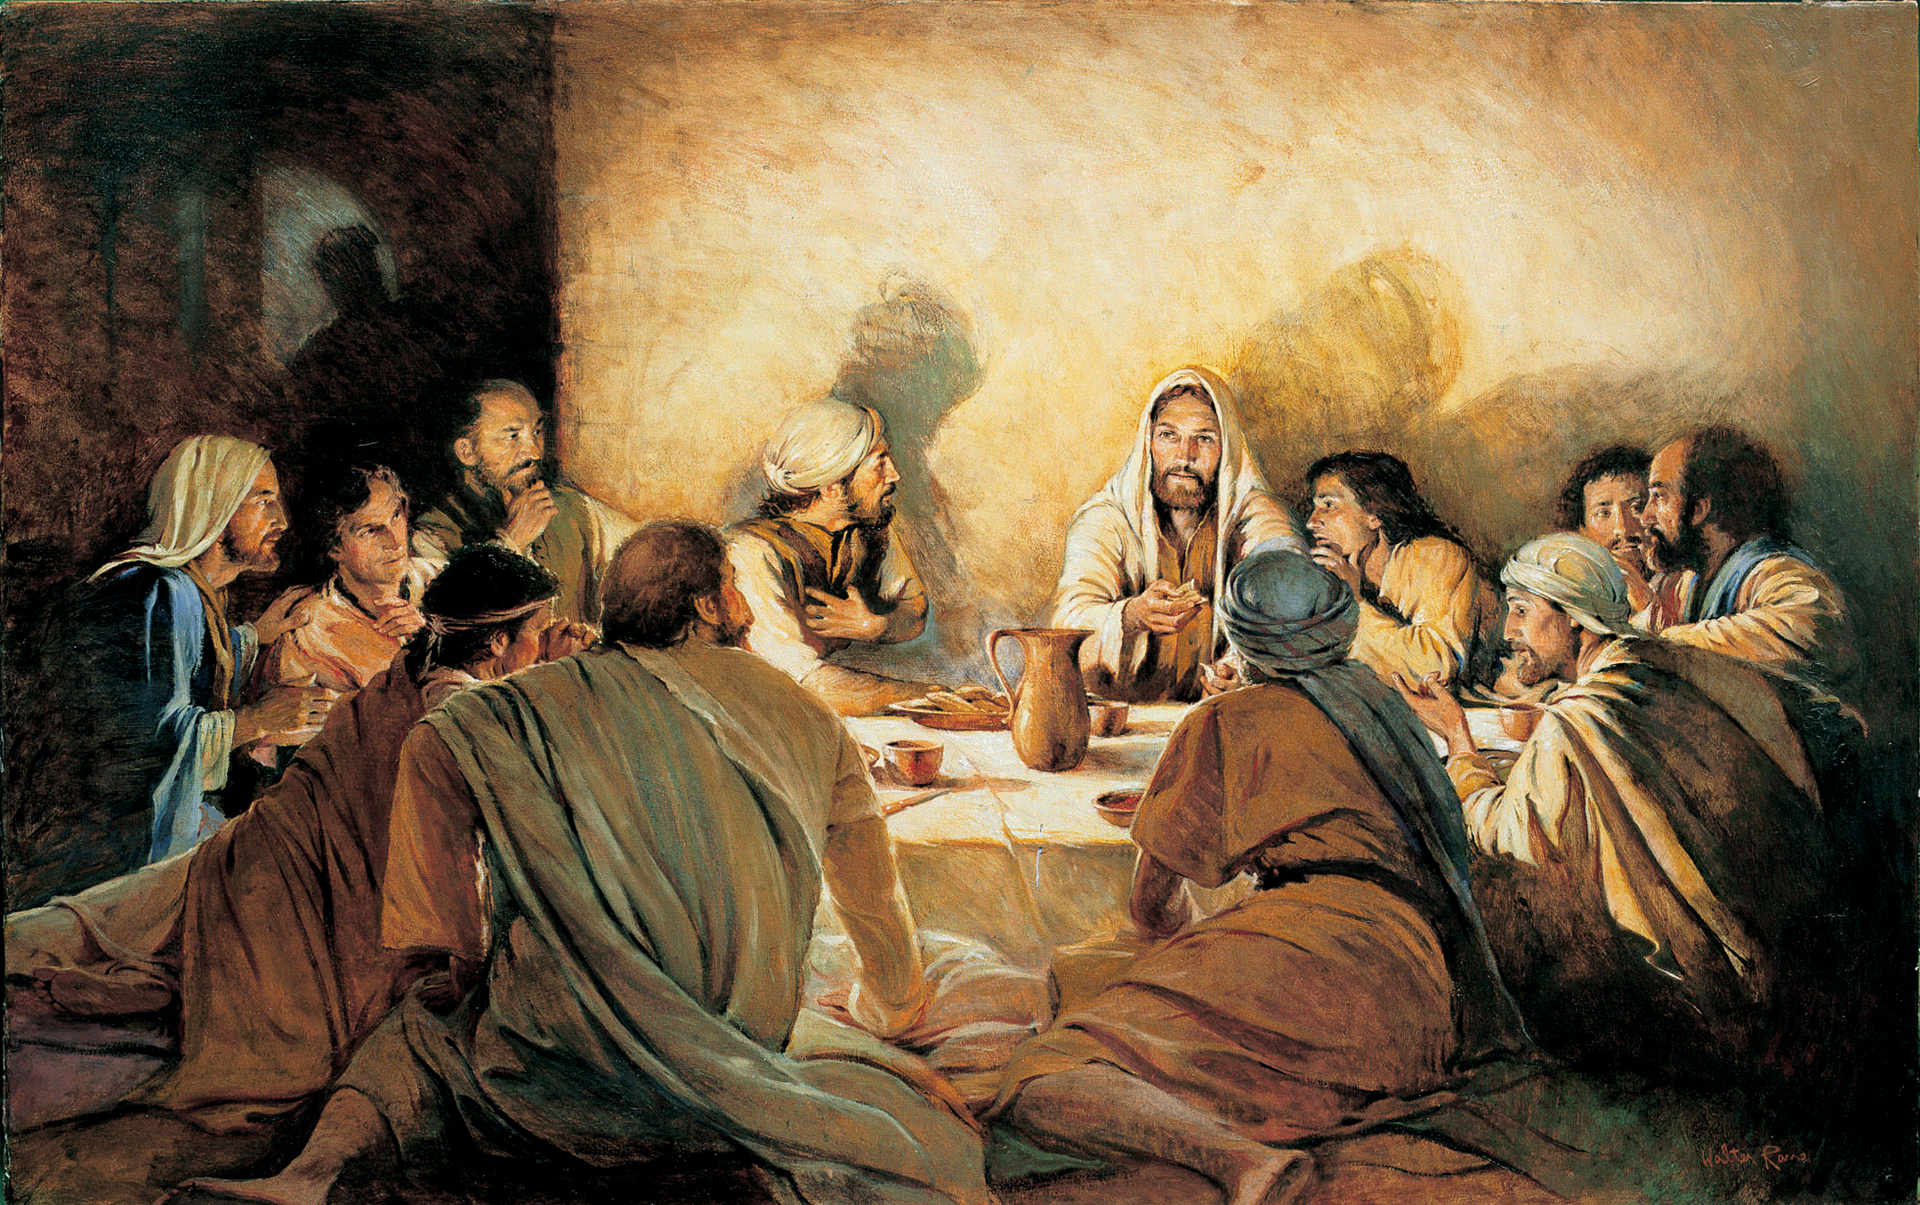 Jesus Christ Became Our Passover Lamb